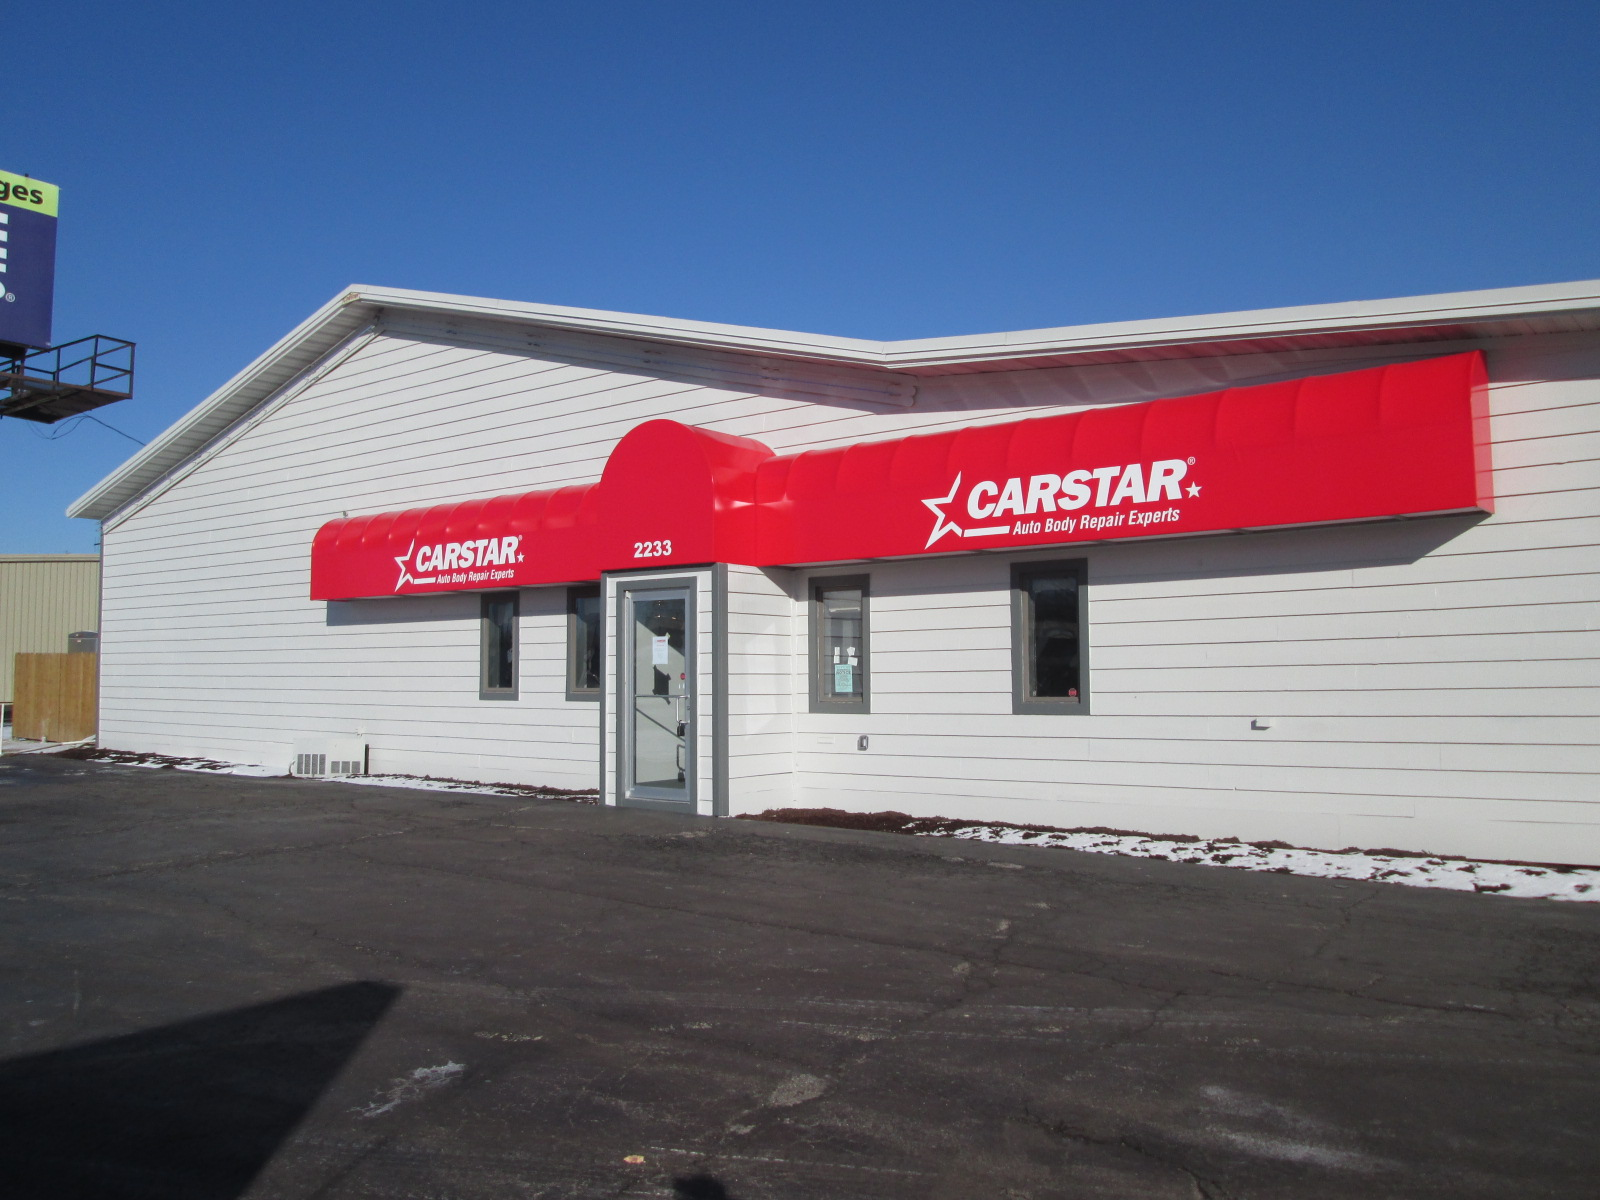 Carstar | front exterior